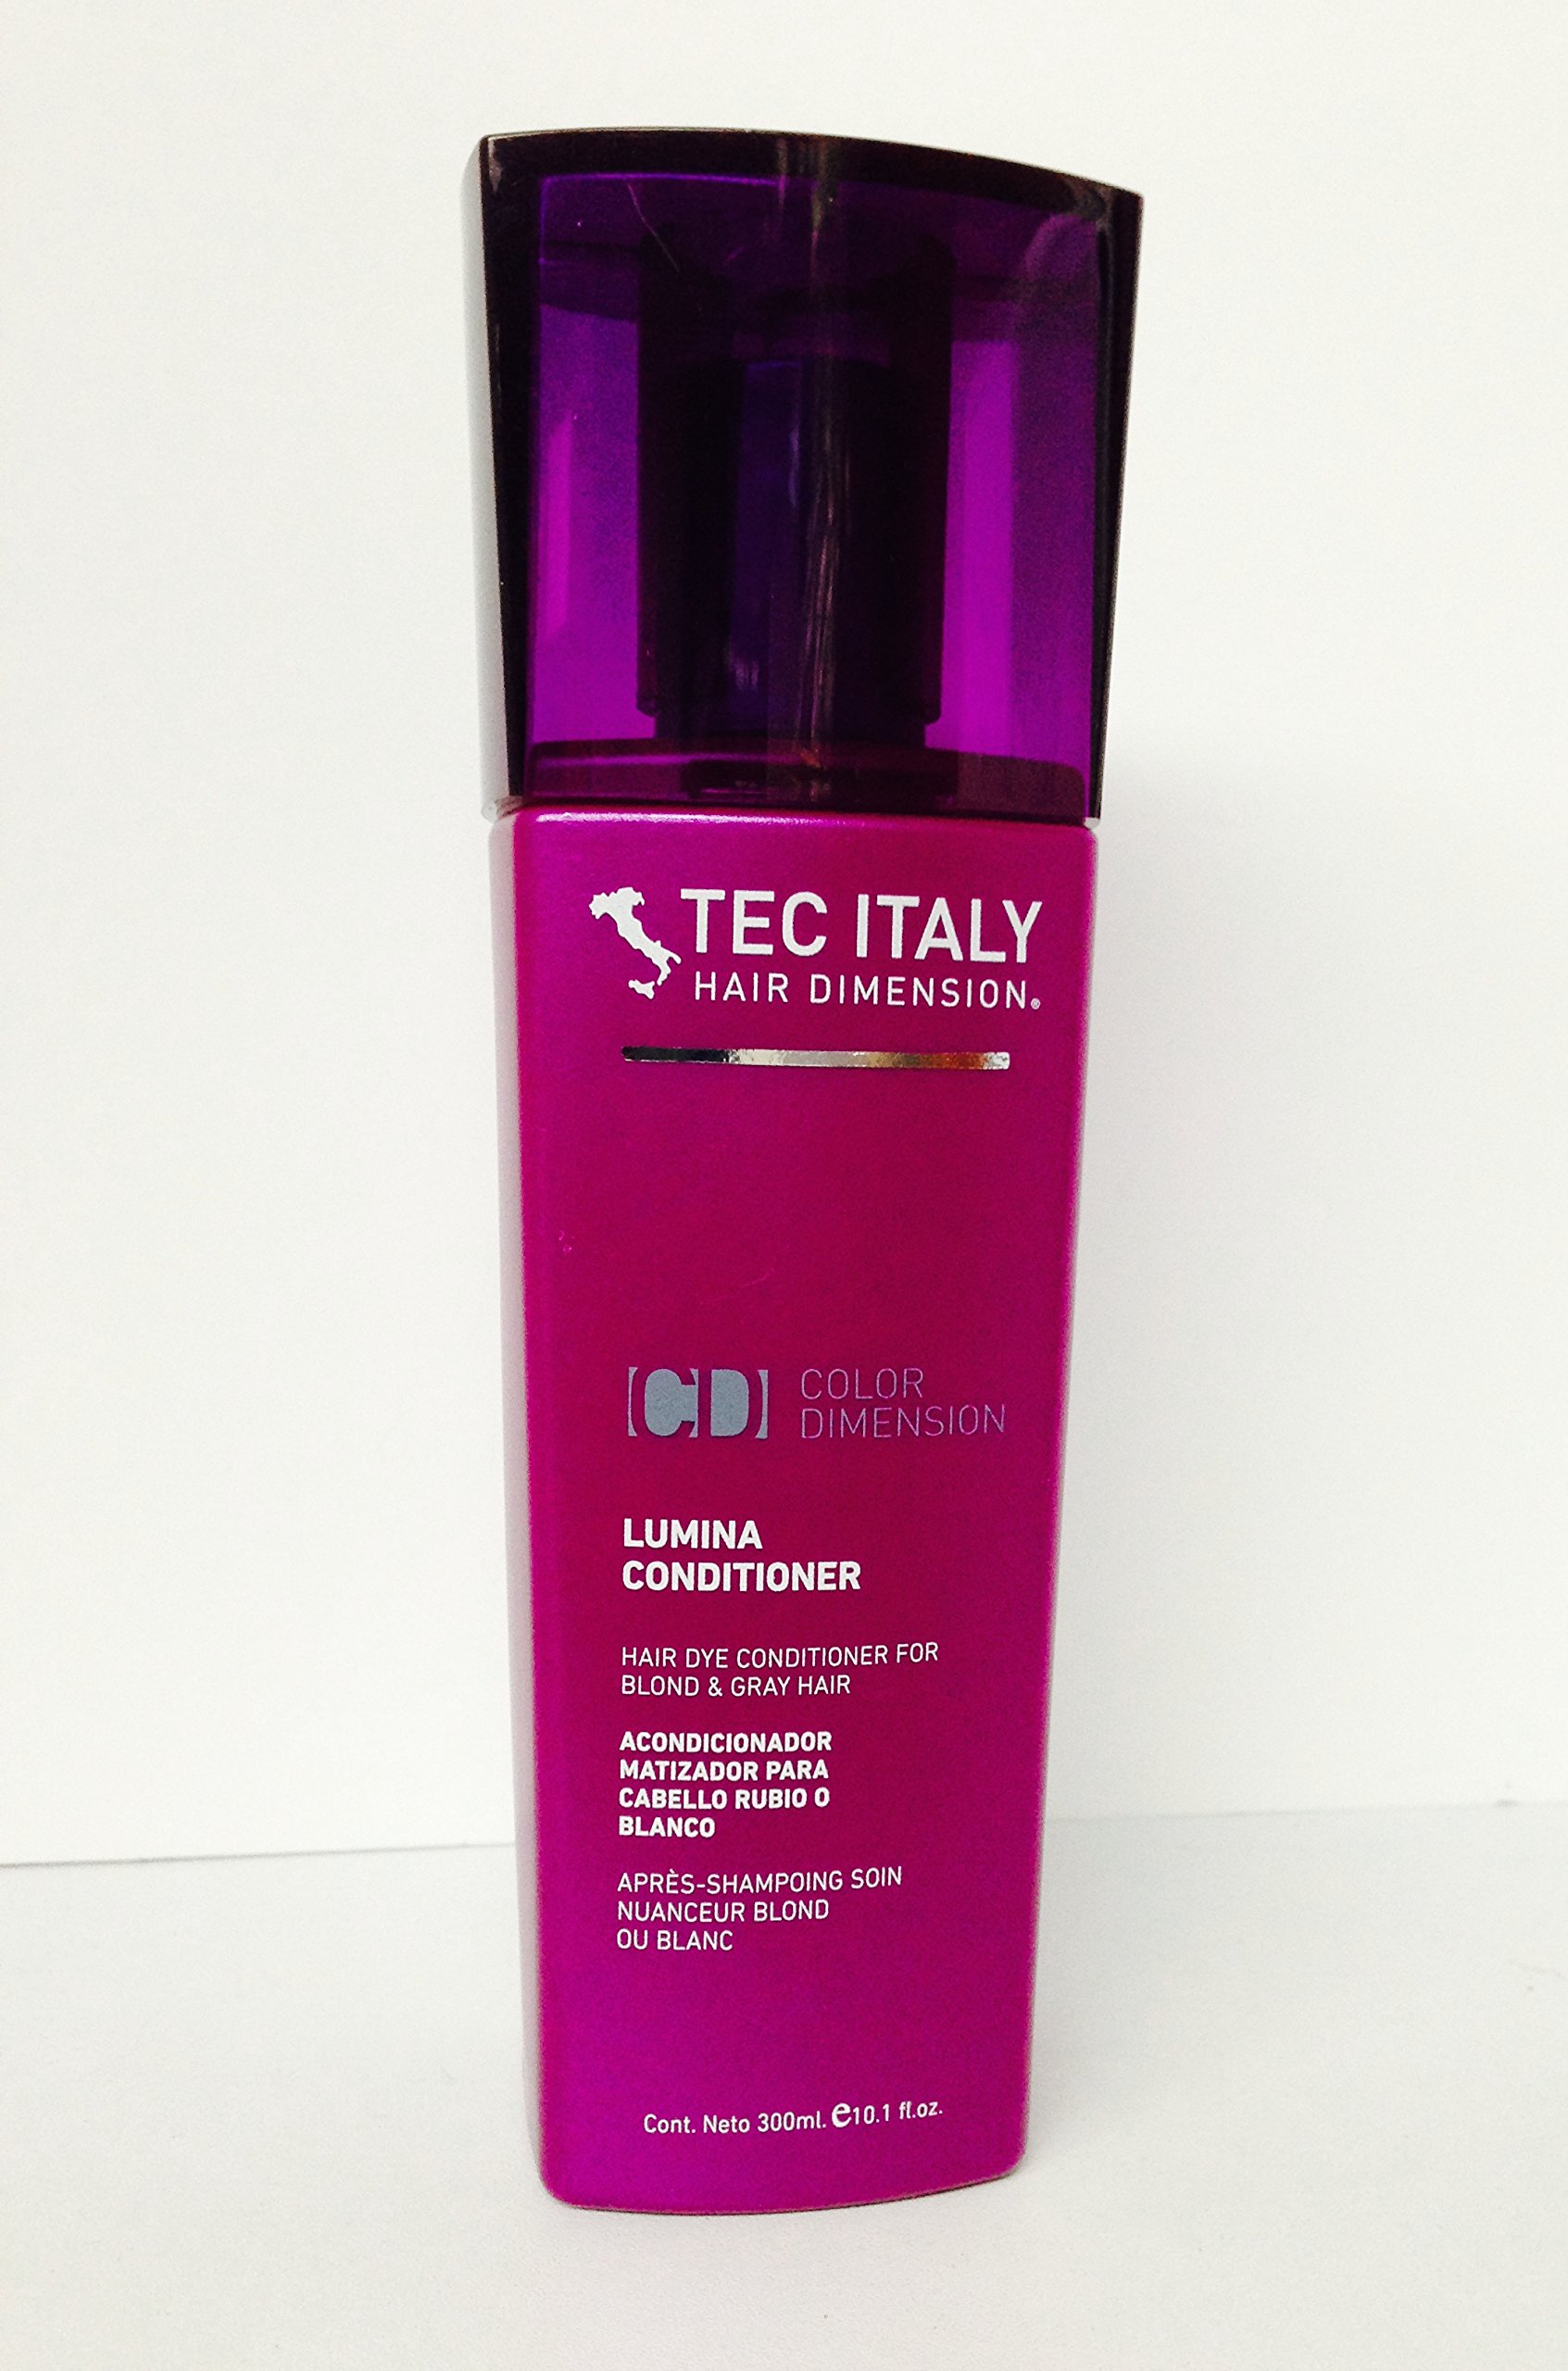 Color art by tec italy - Tec Italy Lumina Conditioner For Blond And Gray Hair 10 1 Oz